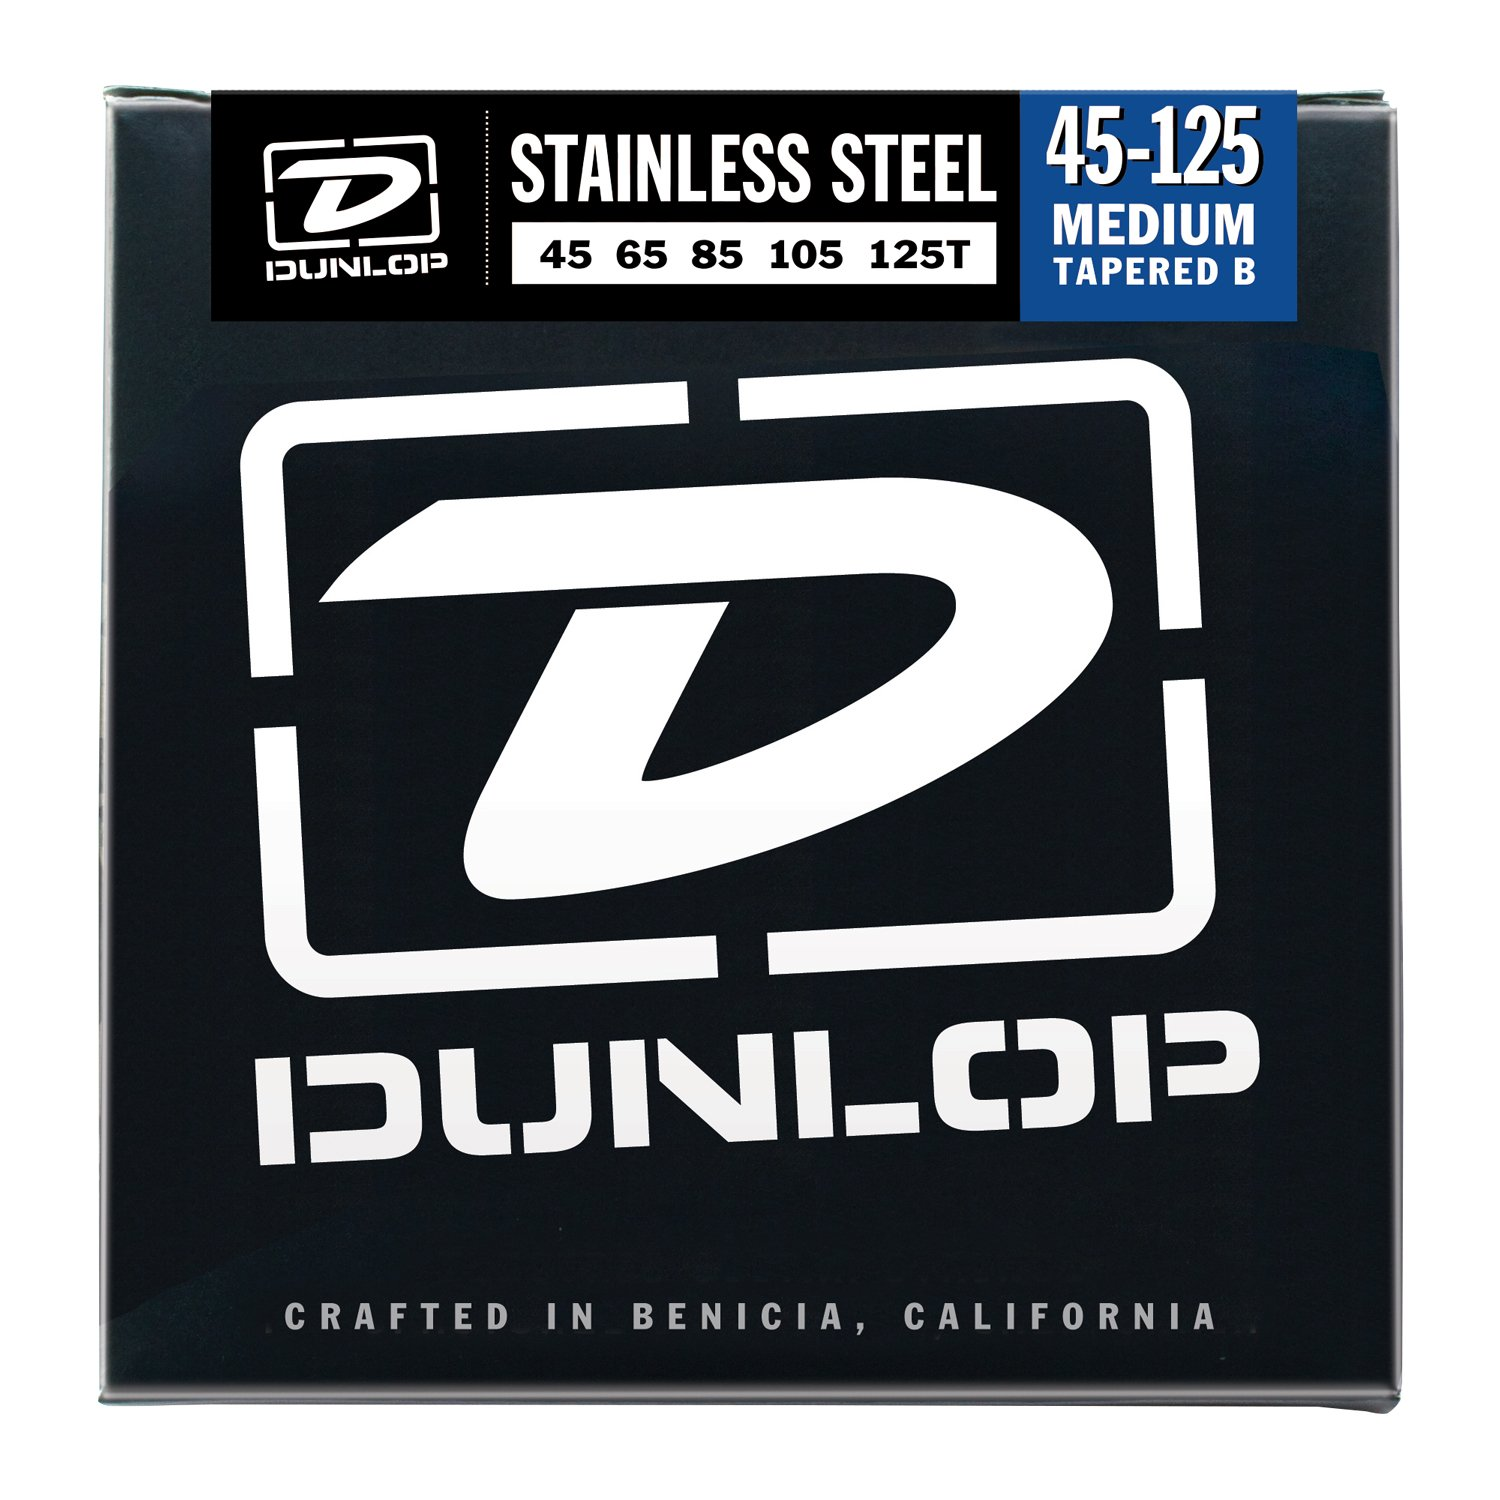 Dunlop DBS45125T Stainless Steel Bass Strings, Medium 5-String w/ Tapered B, .045-.125, 5 Strings/Set rotosound rs66lc bass strings stainless steel